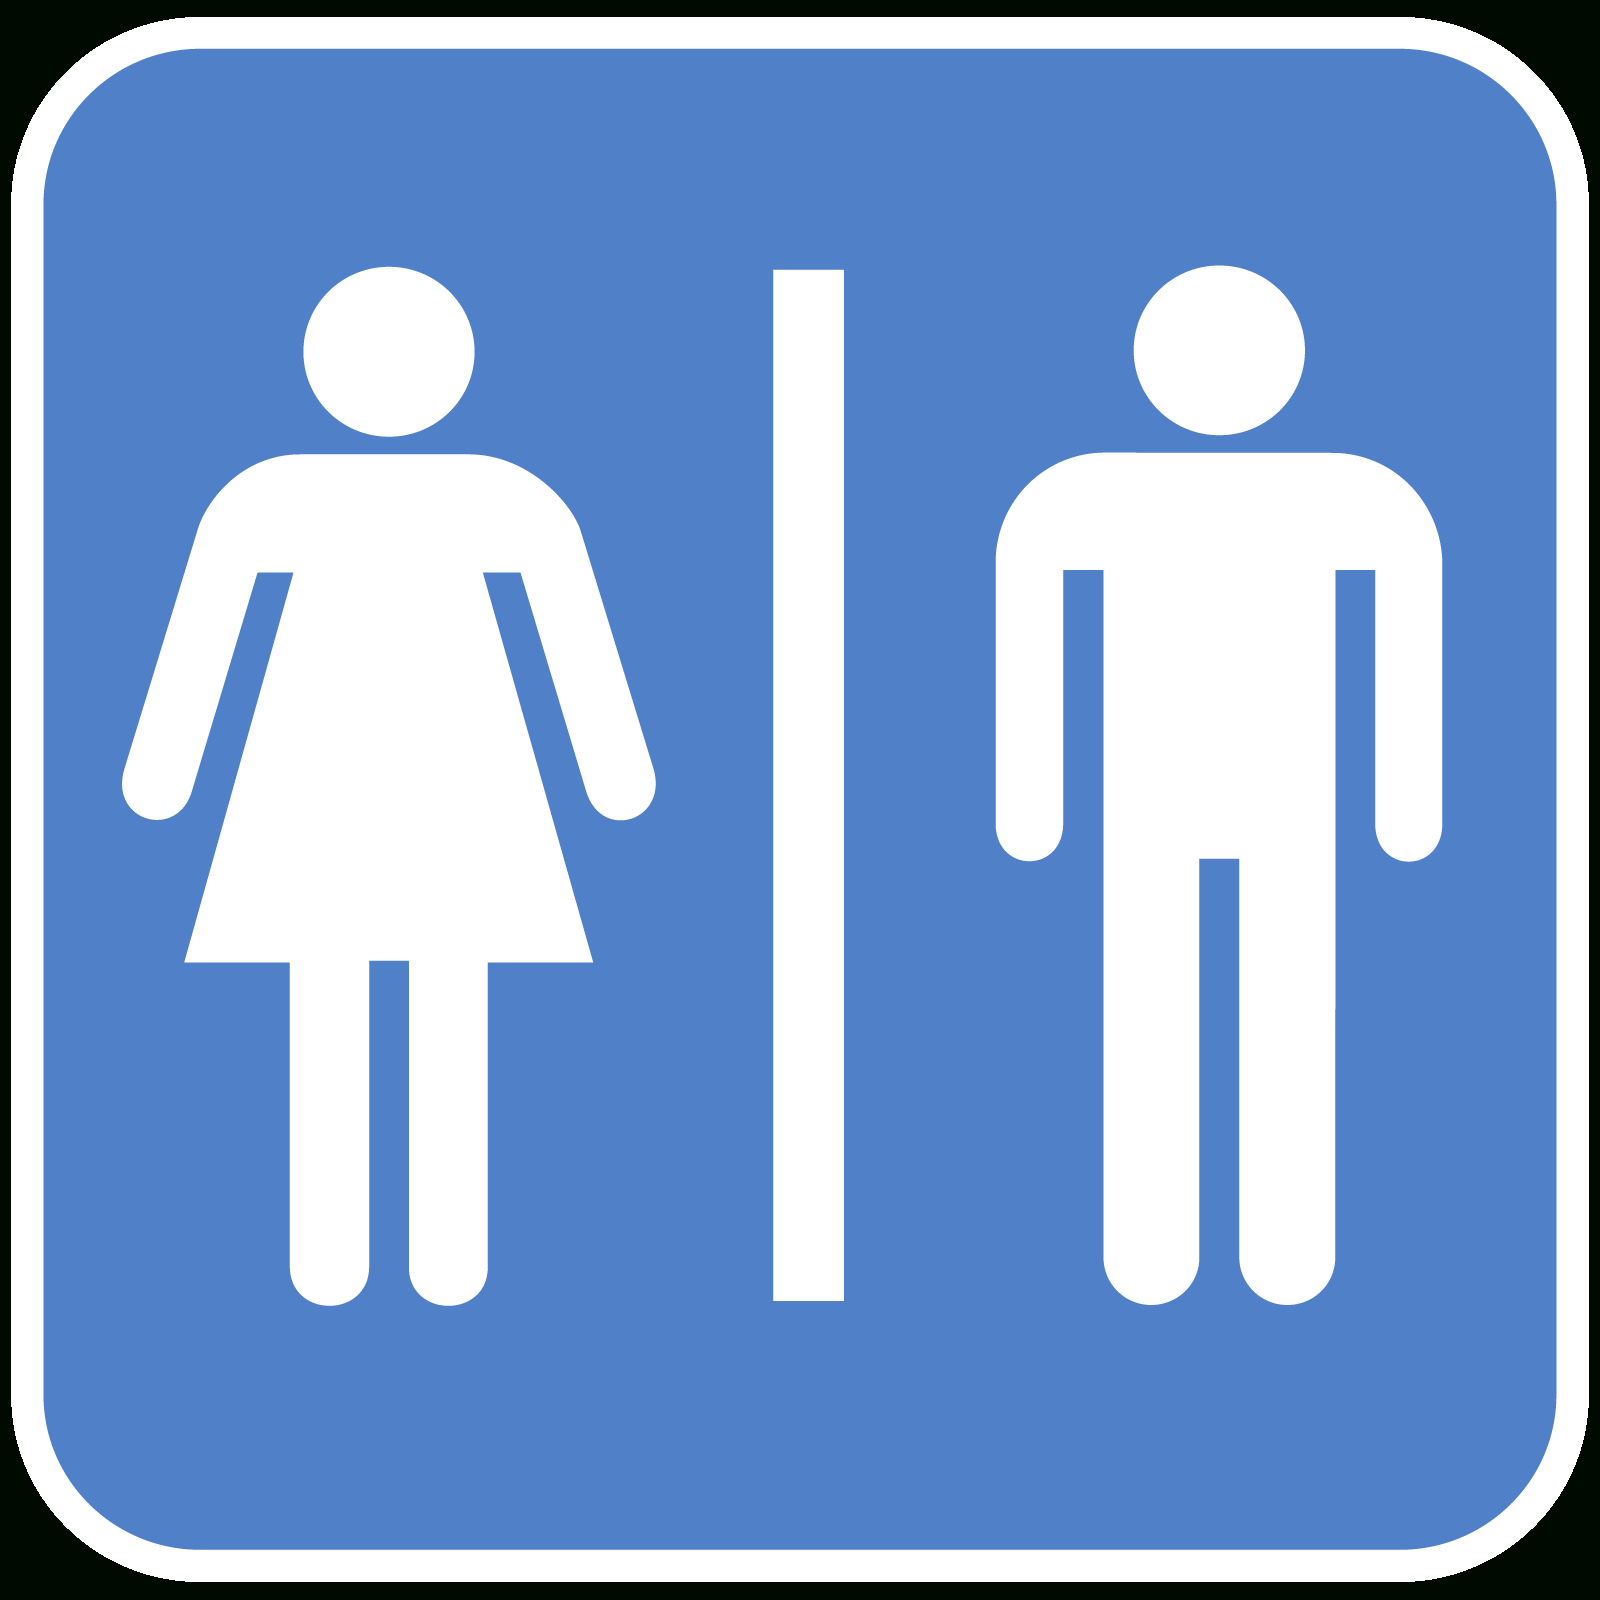 Free Printable Restroom Signs, Download Free Clip Art, Free Clip Art - Free Printable No Restroom Signs